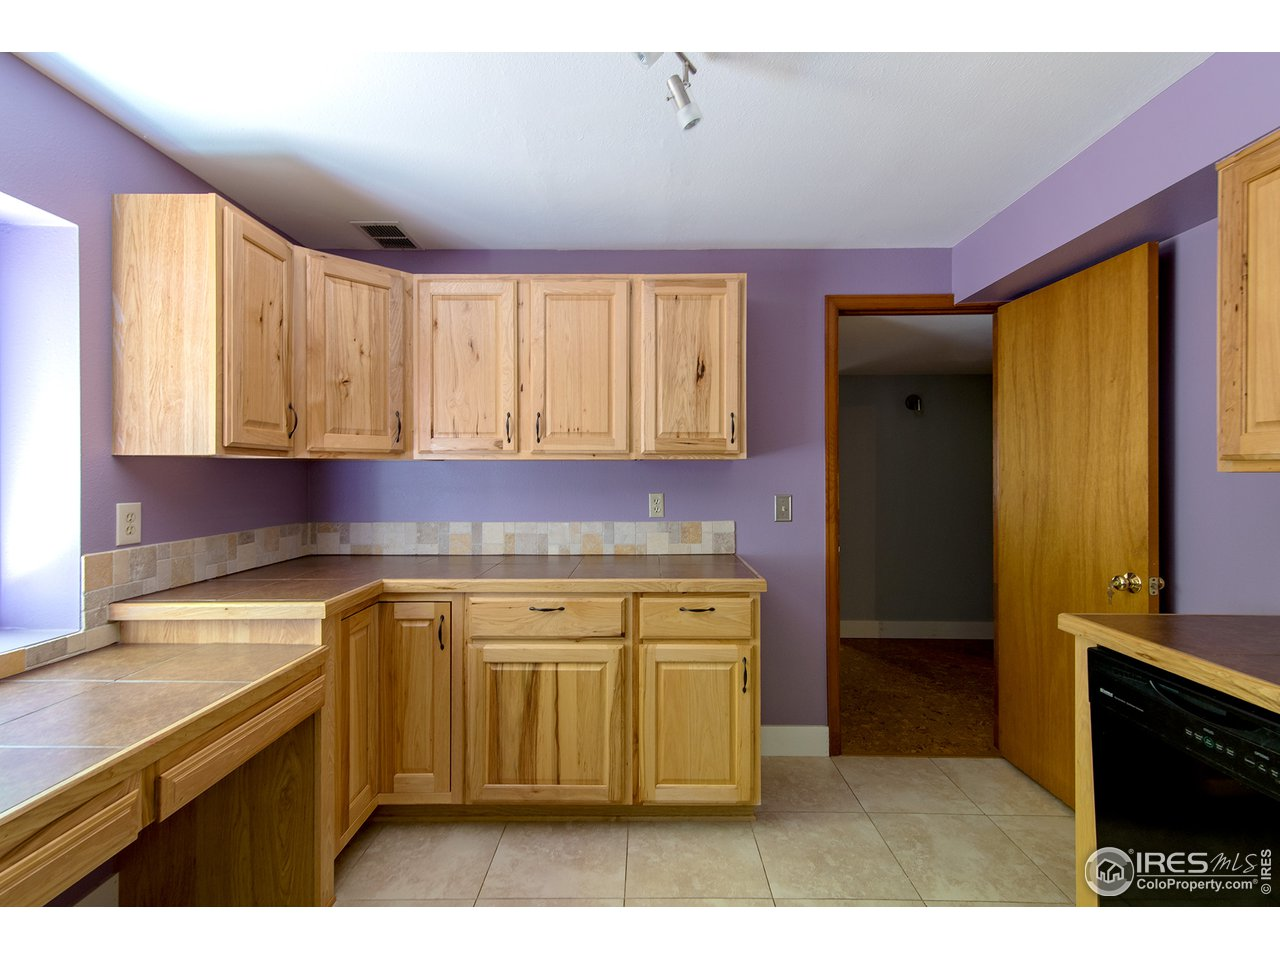 Lower BR with cabinets